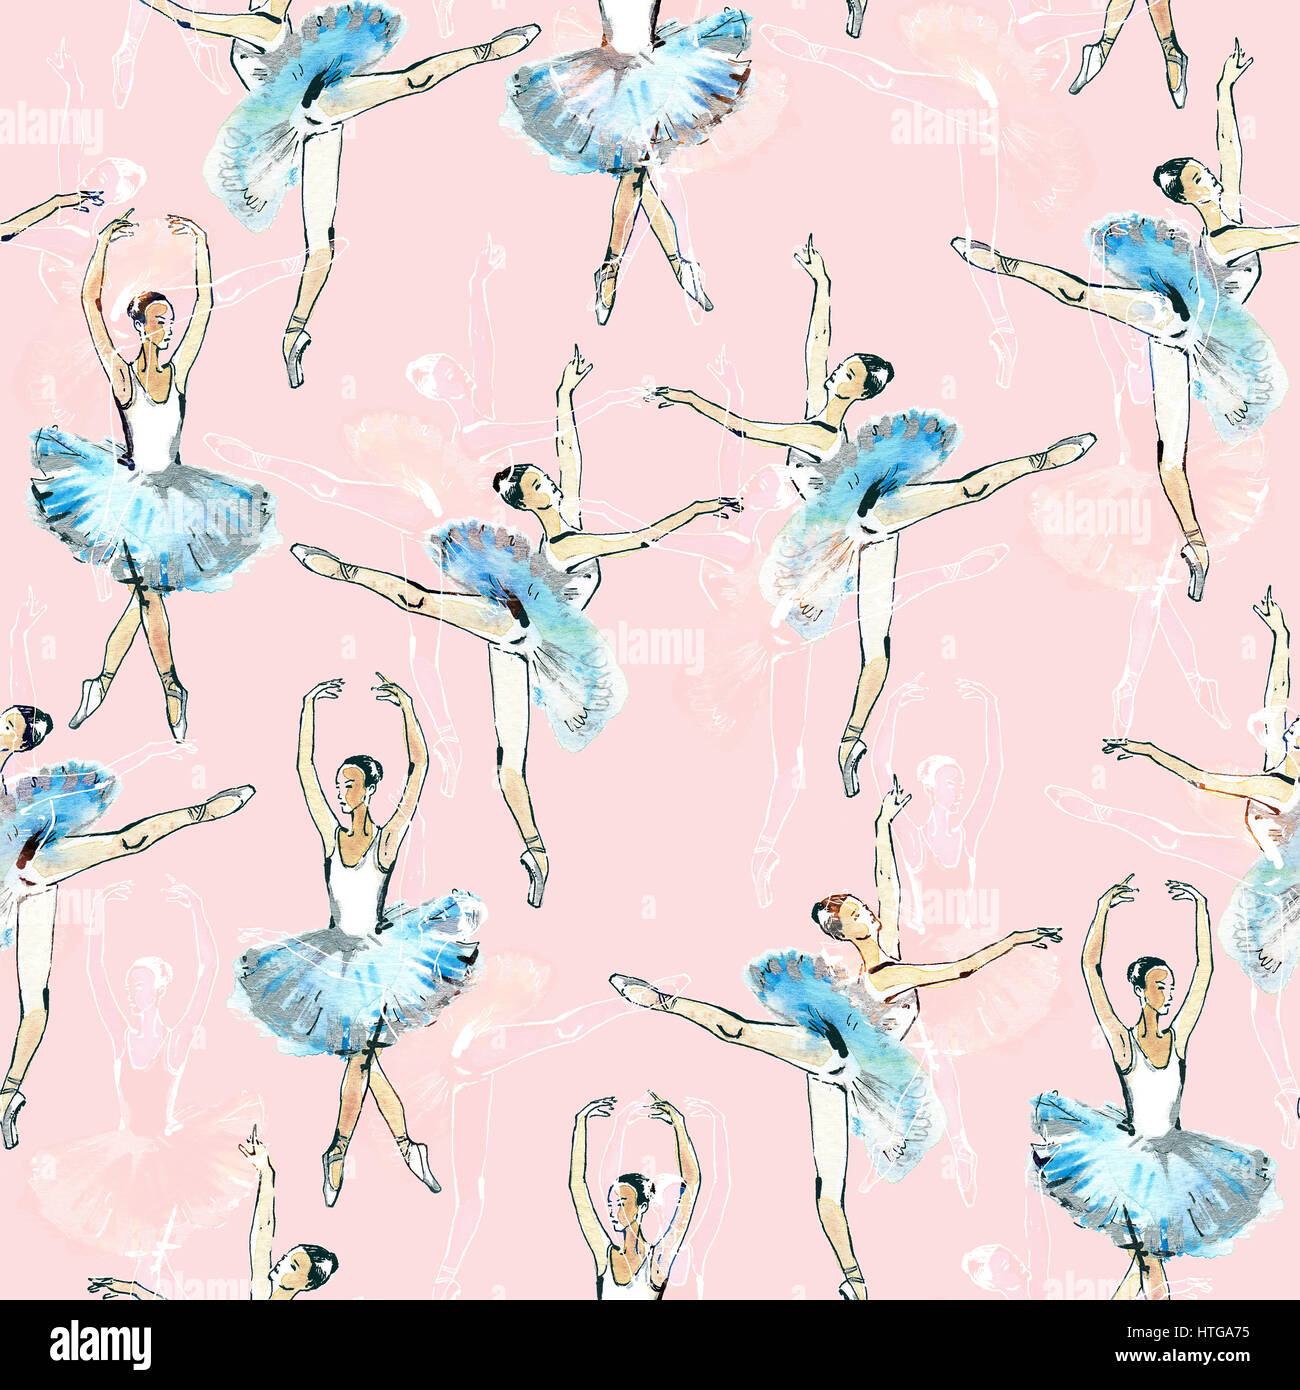 Seamless pattern of ballet dancers royalty free stock photography - Seamless Pattern Of Ballet Dancers Black White And Silver Drawing Watercolor Painting Isolated On Pink Background Tabuday Alamy Stock Photo